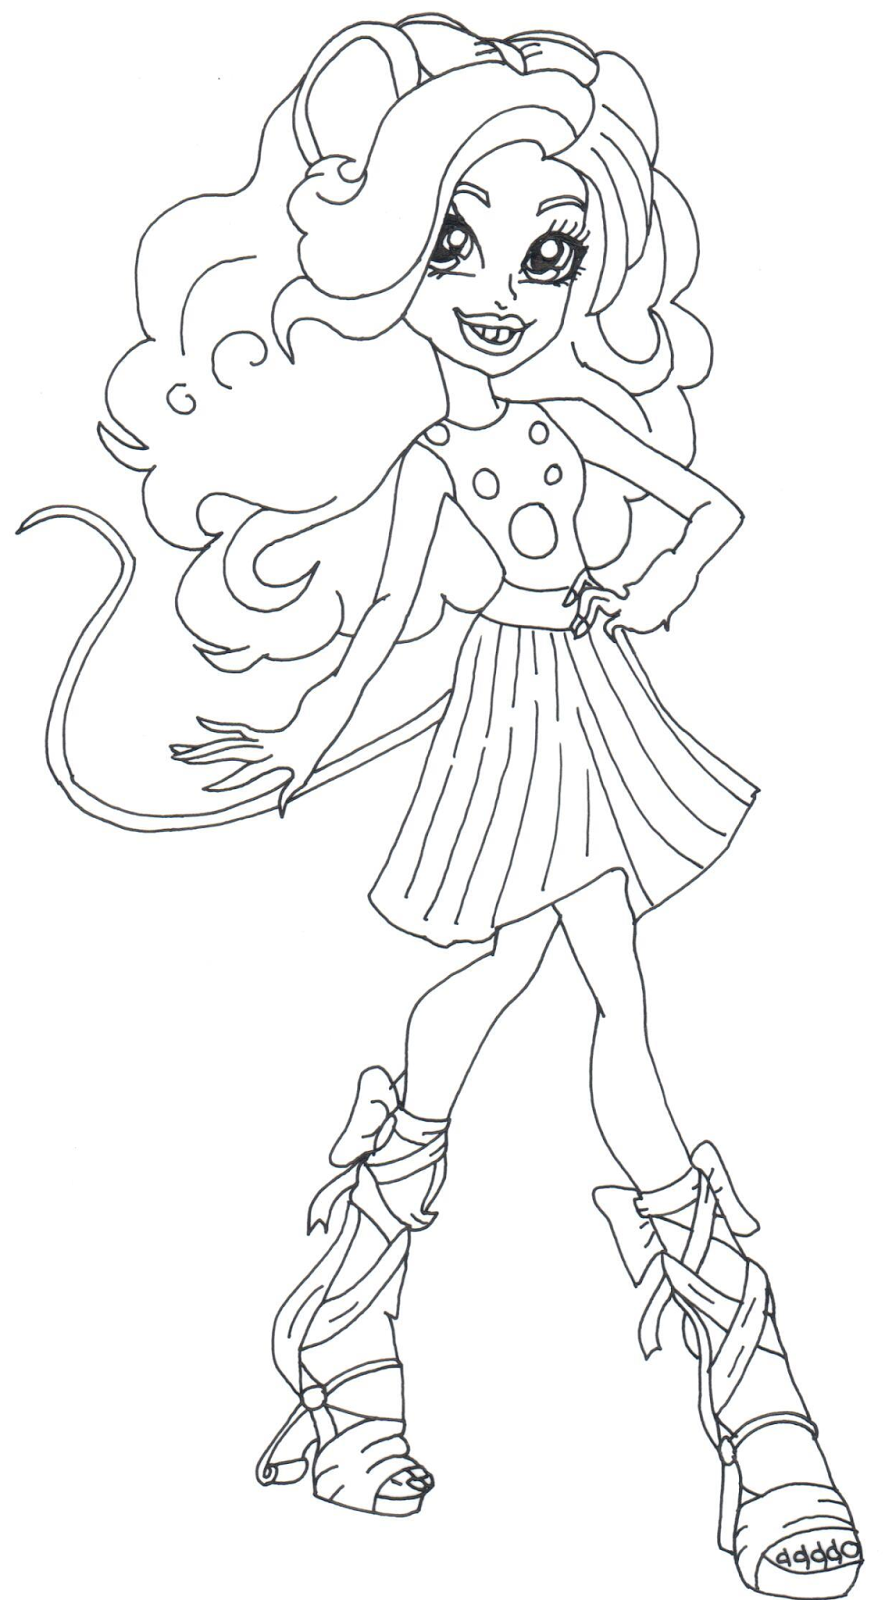 Free printable monster high coloring pages october 2015 for Monster high free coloring pages